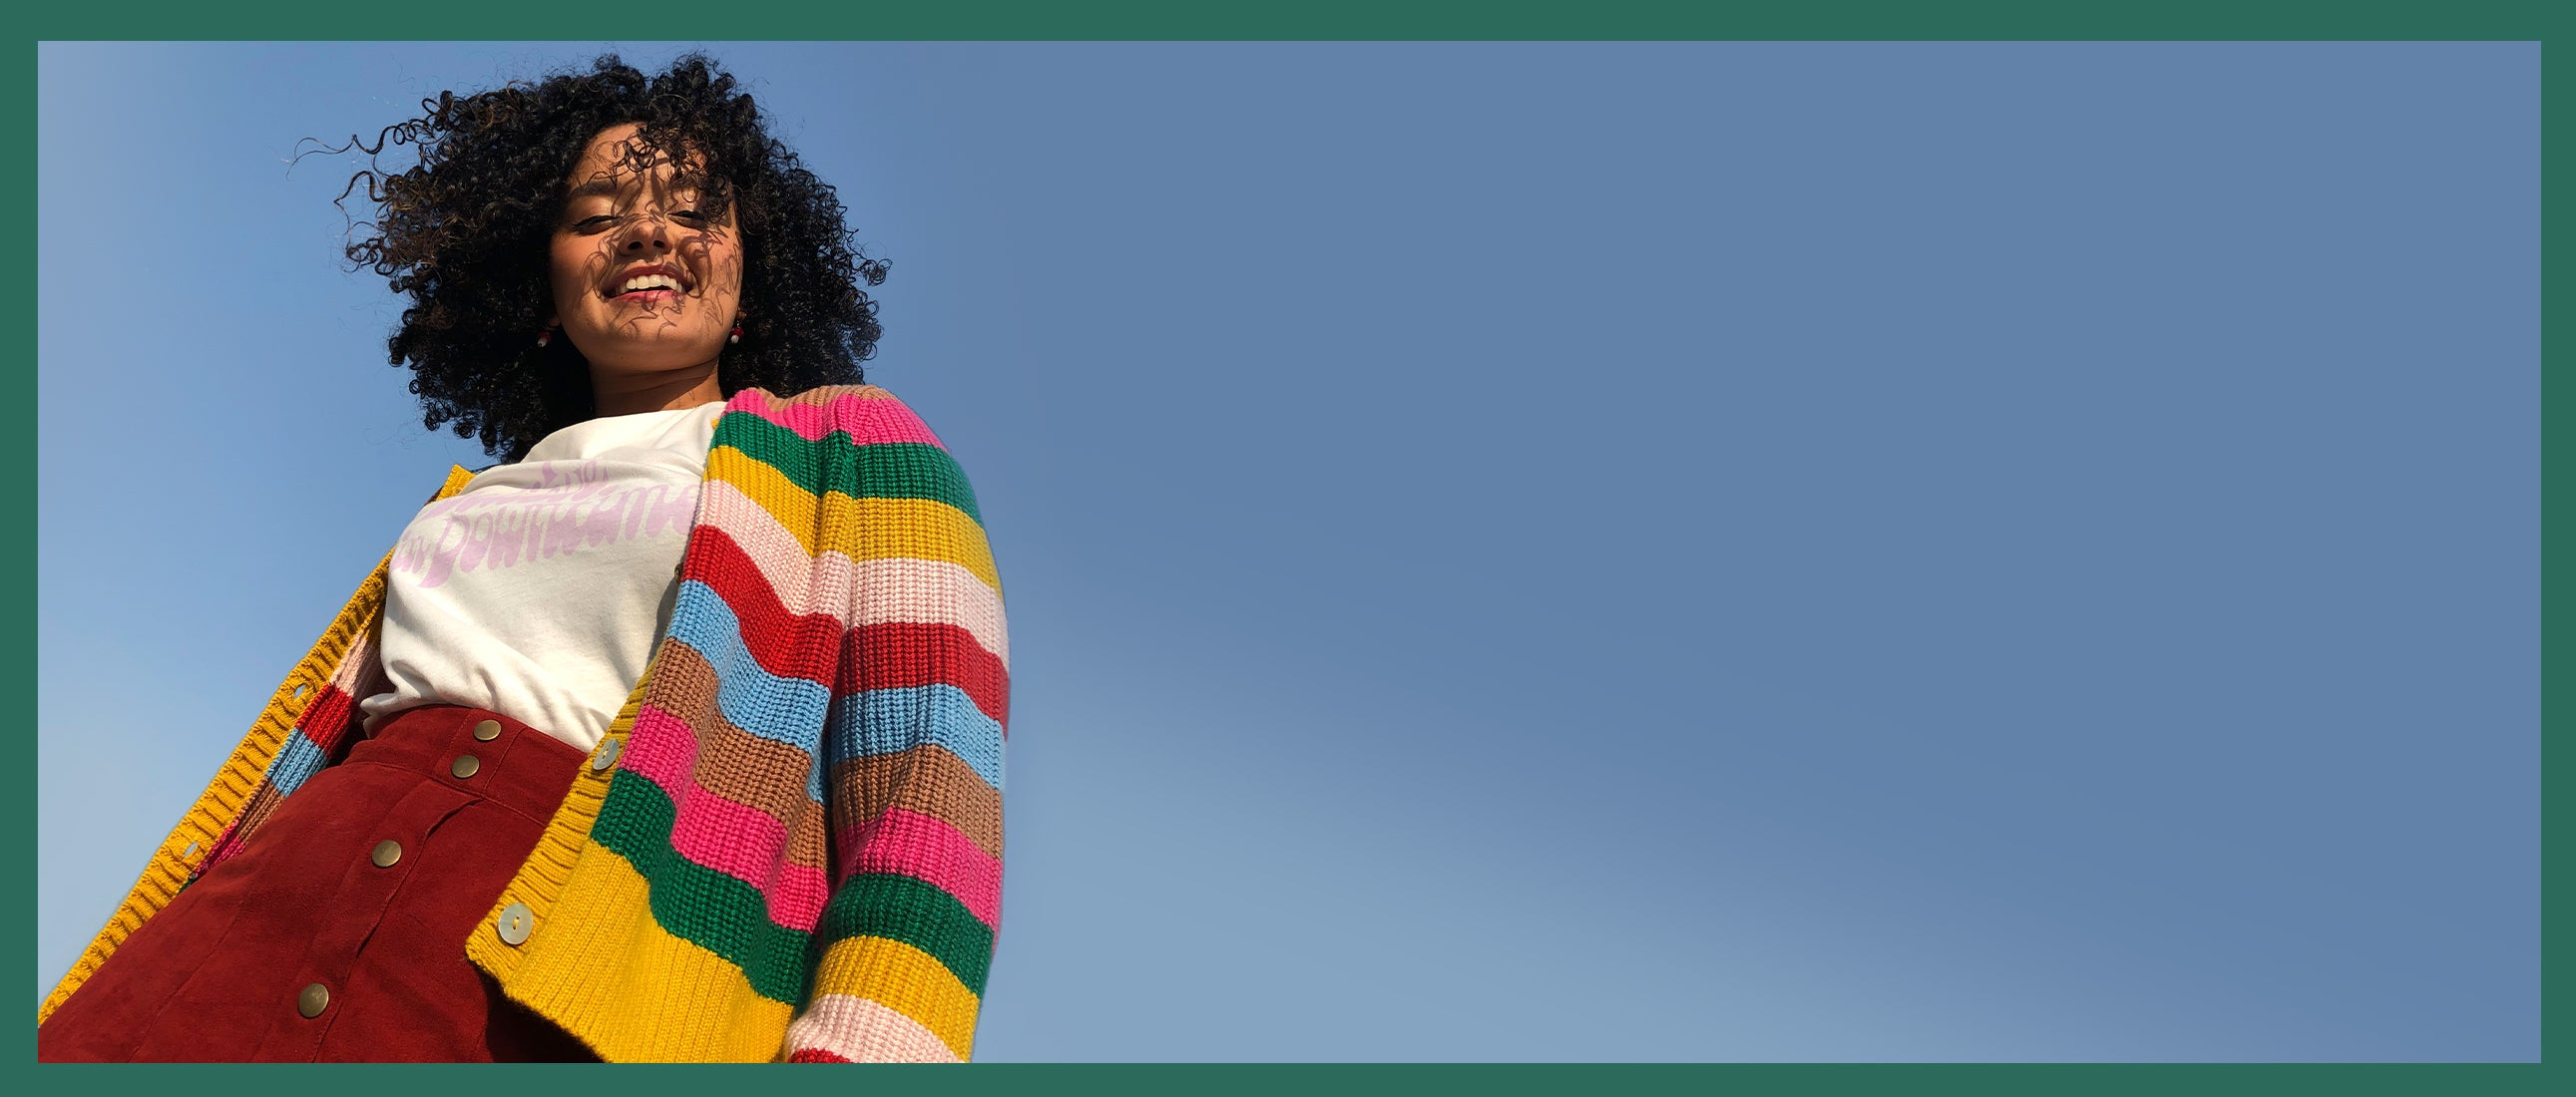 Model wearing yellow, green, pink, brown, blue and red striped cardigan